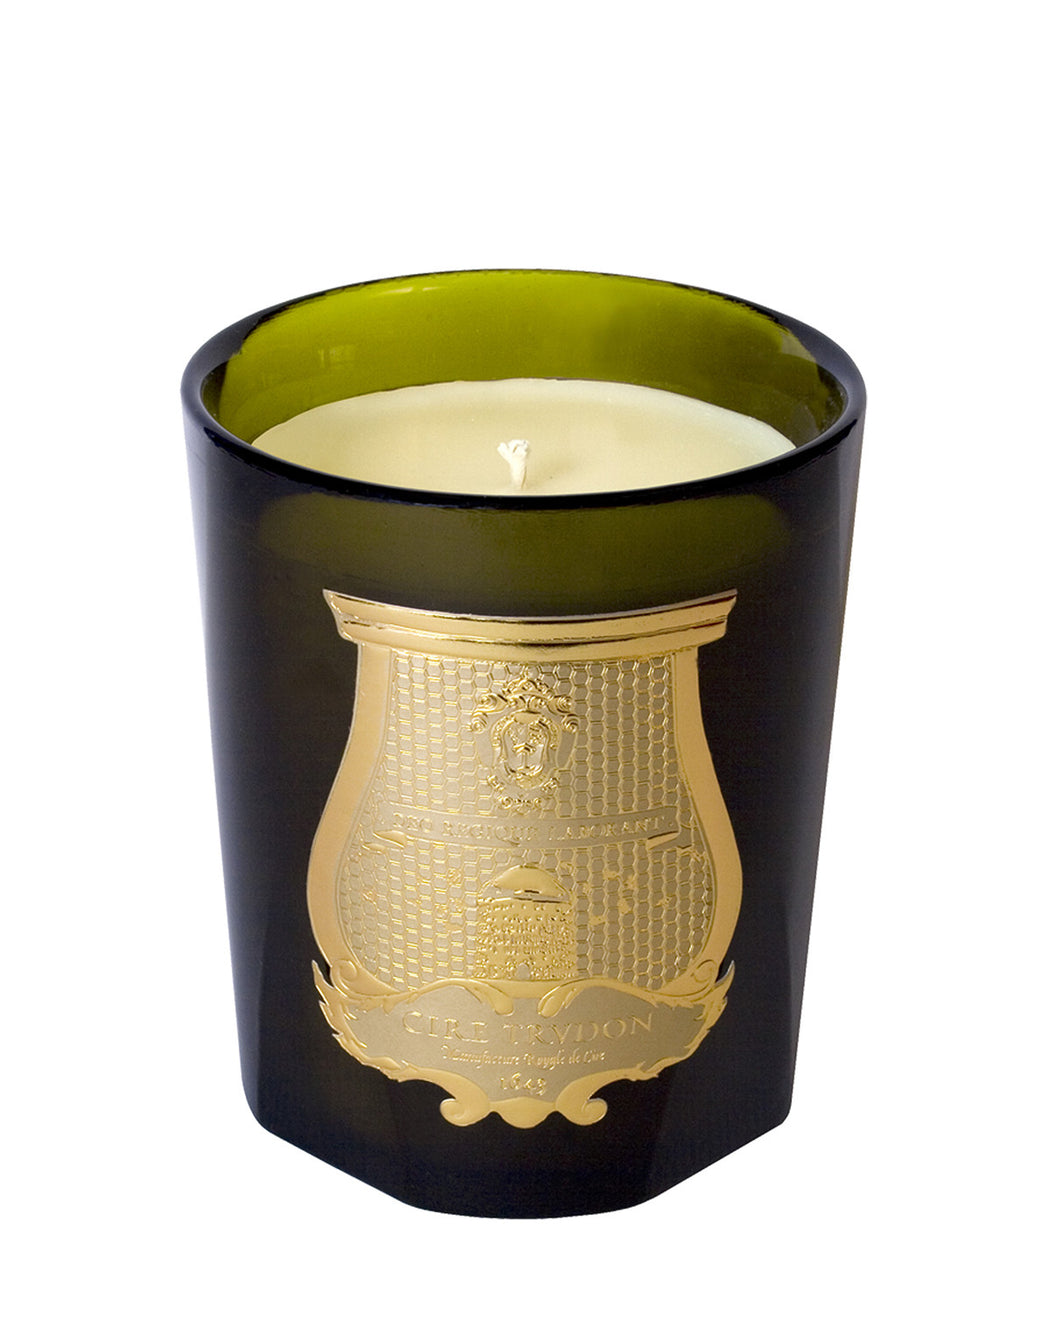 CIRE TRUDON CANDLE 270g Candle ERNESTO